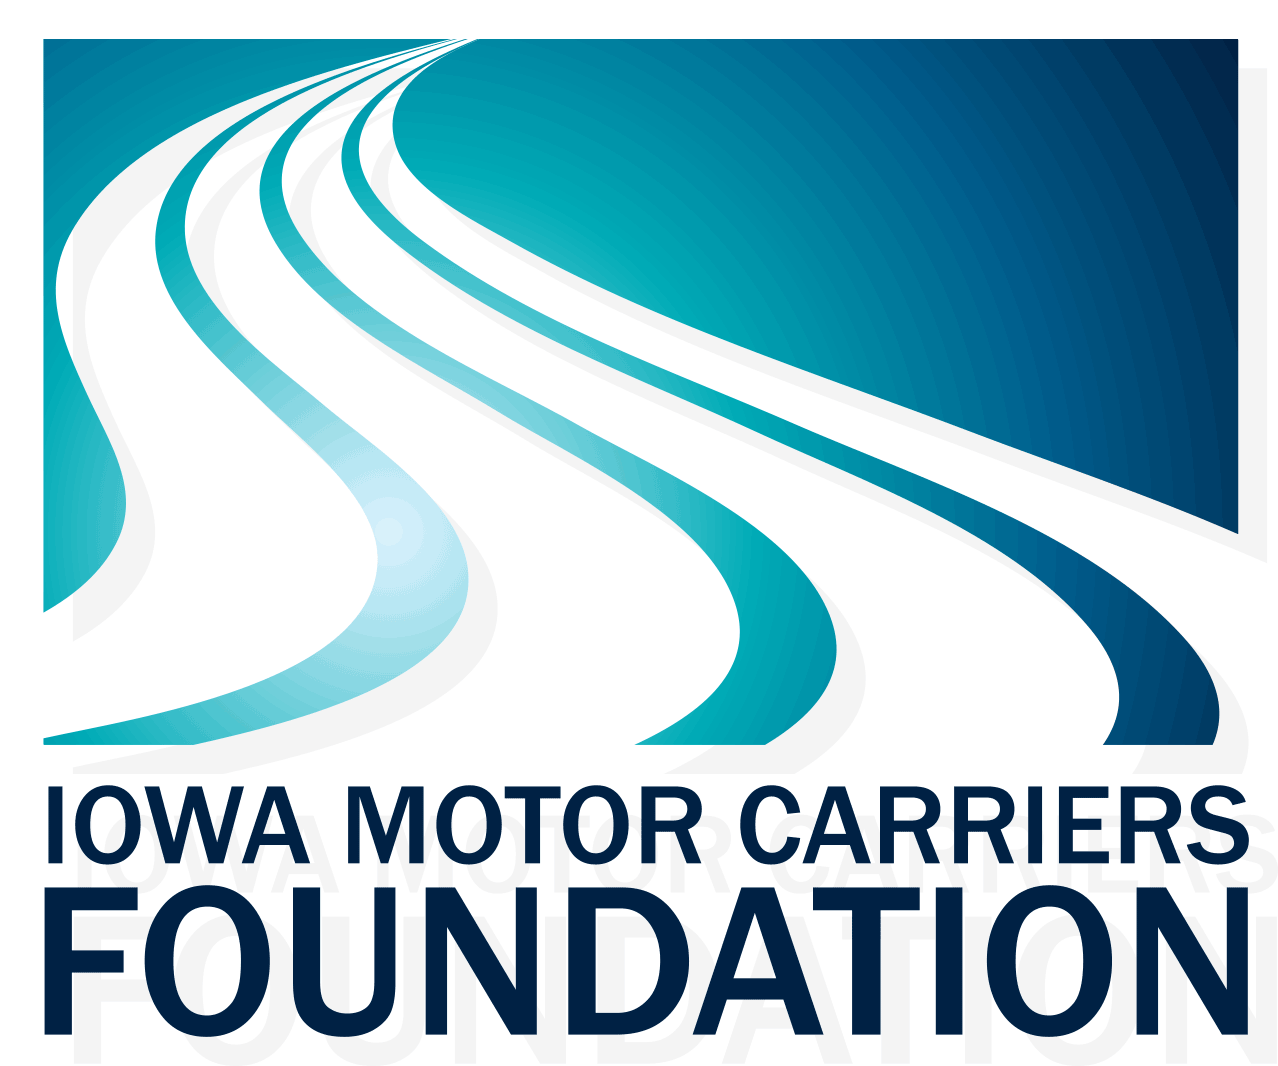 Efforts Underway To Fully Fund Idea >> Iowa Motor Carriers Foundation